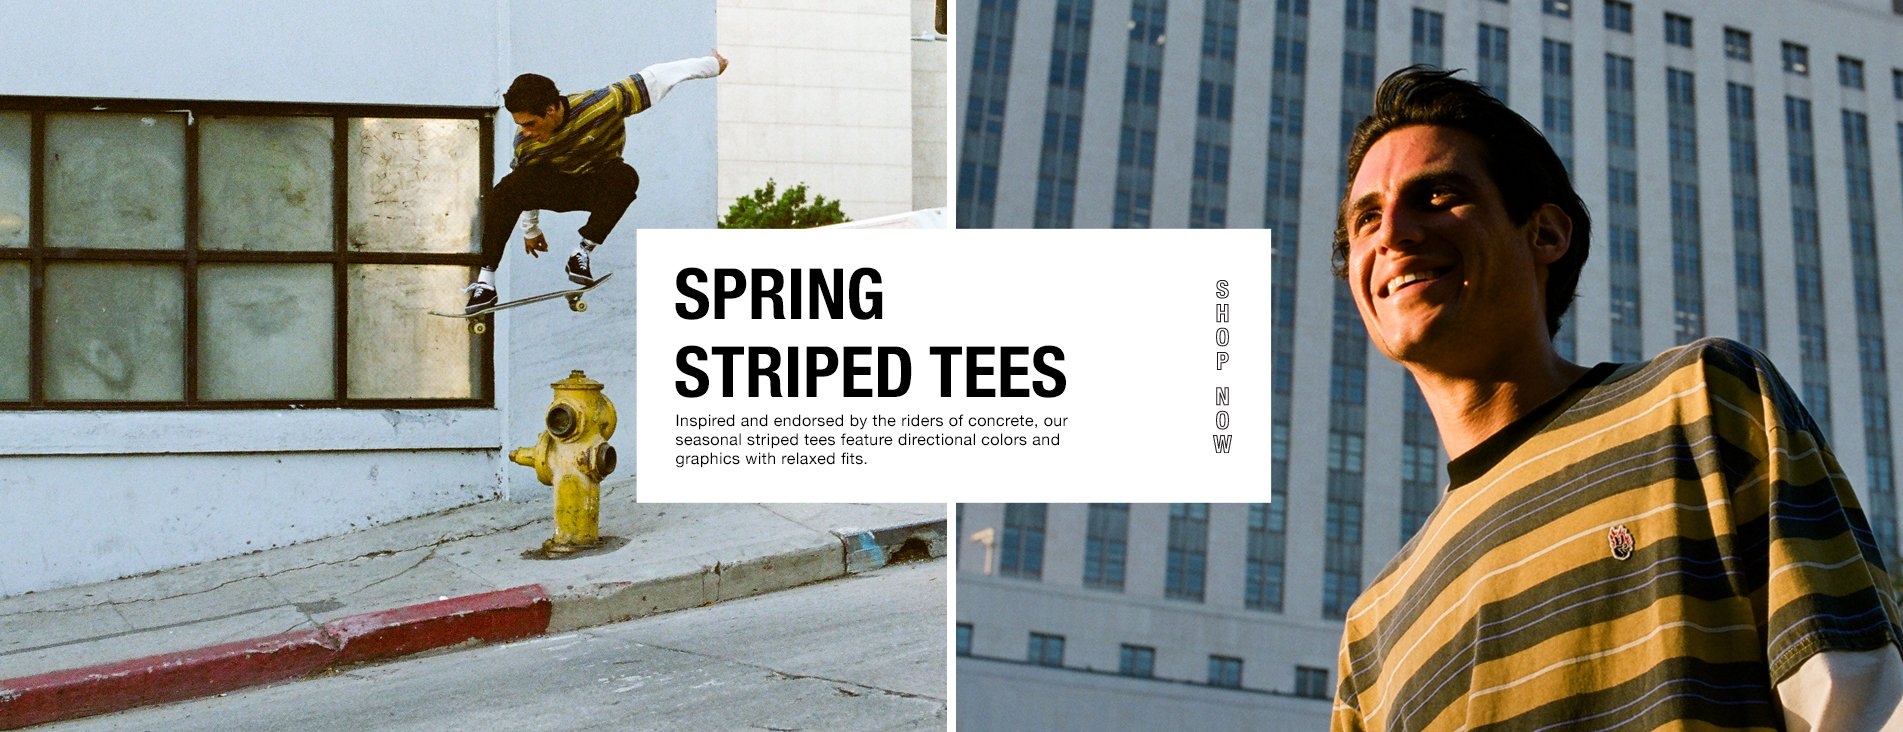 Spring striped tees